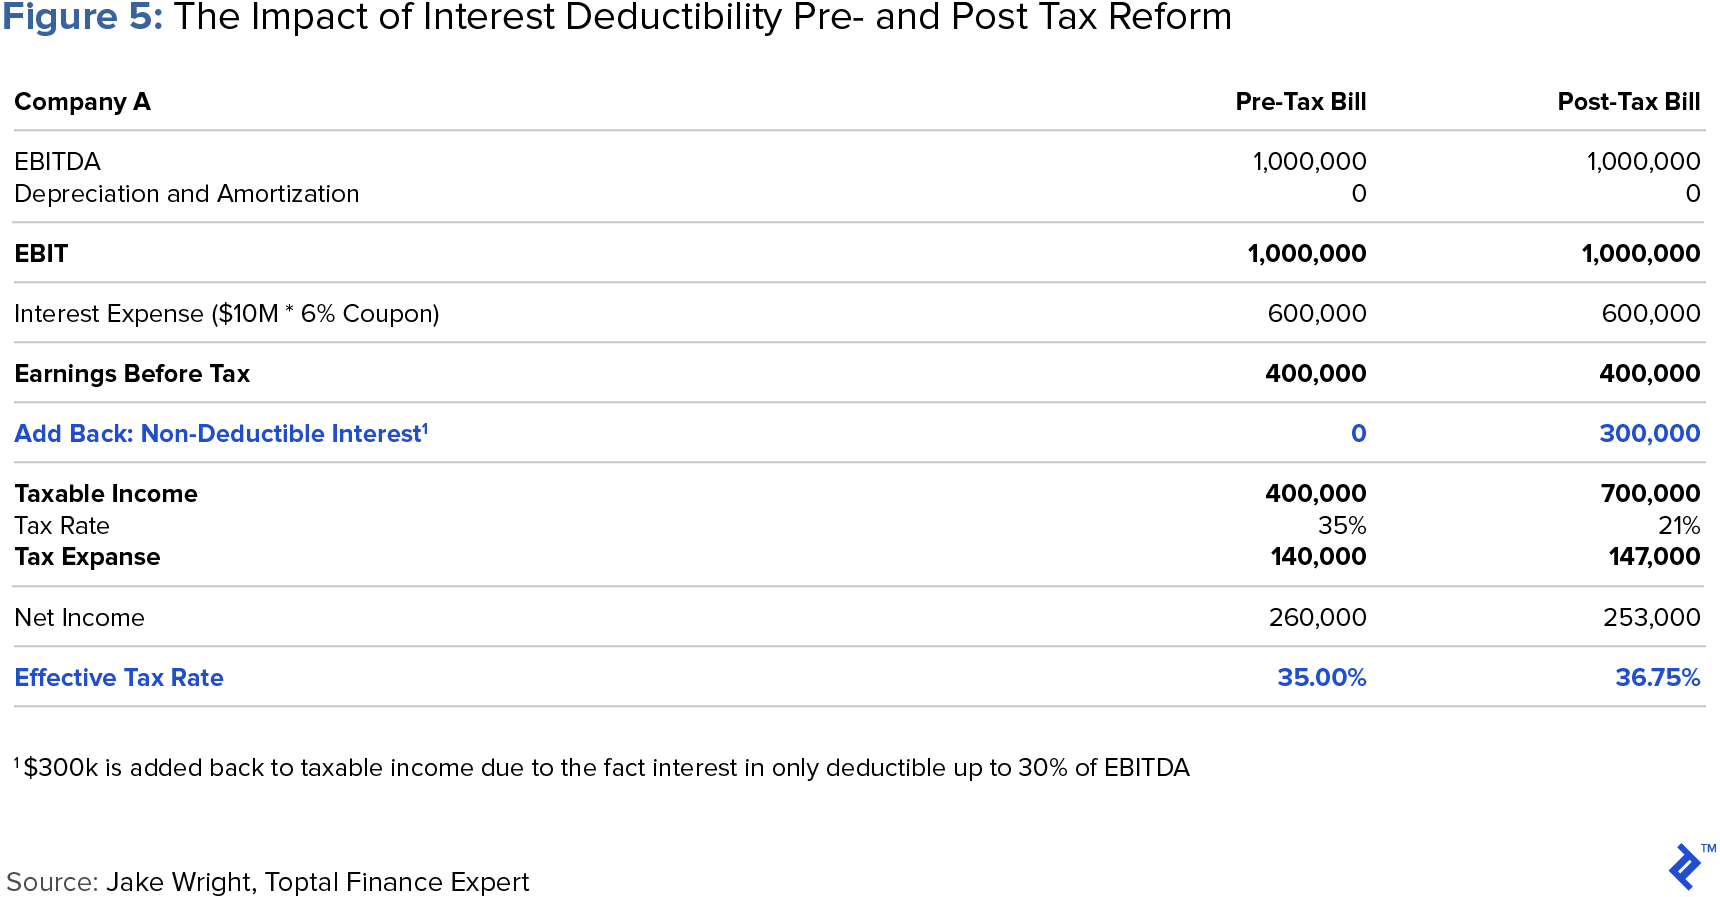 figure showing the impact of interest deductibility pre and post tax reform